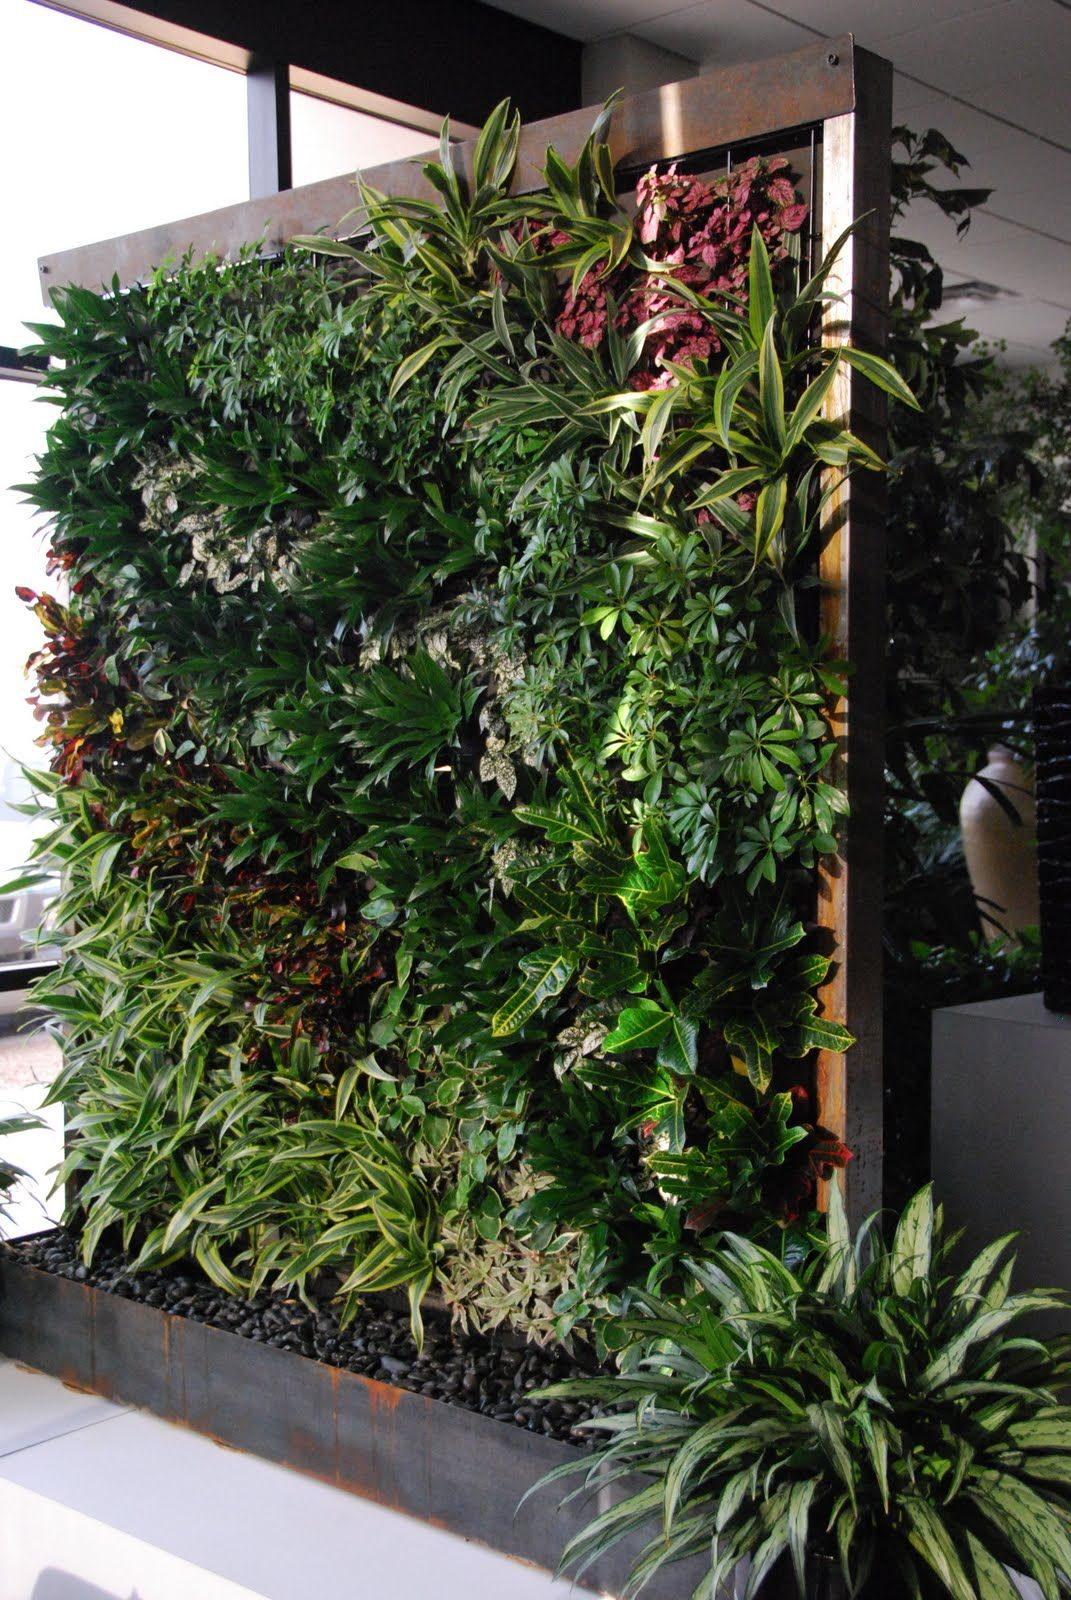 Growing Up Green Walls Vertical Gardens From Vines And Veggies